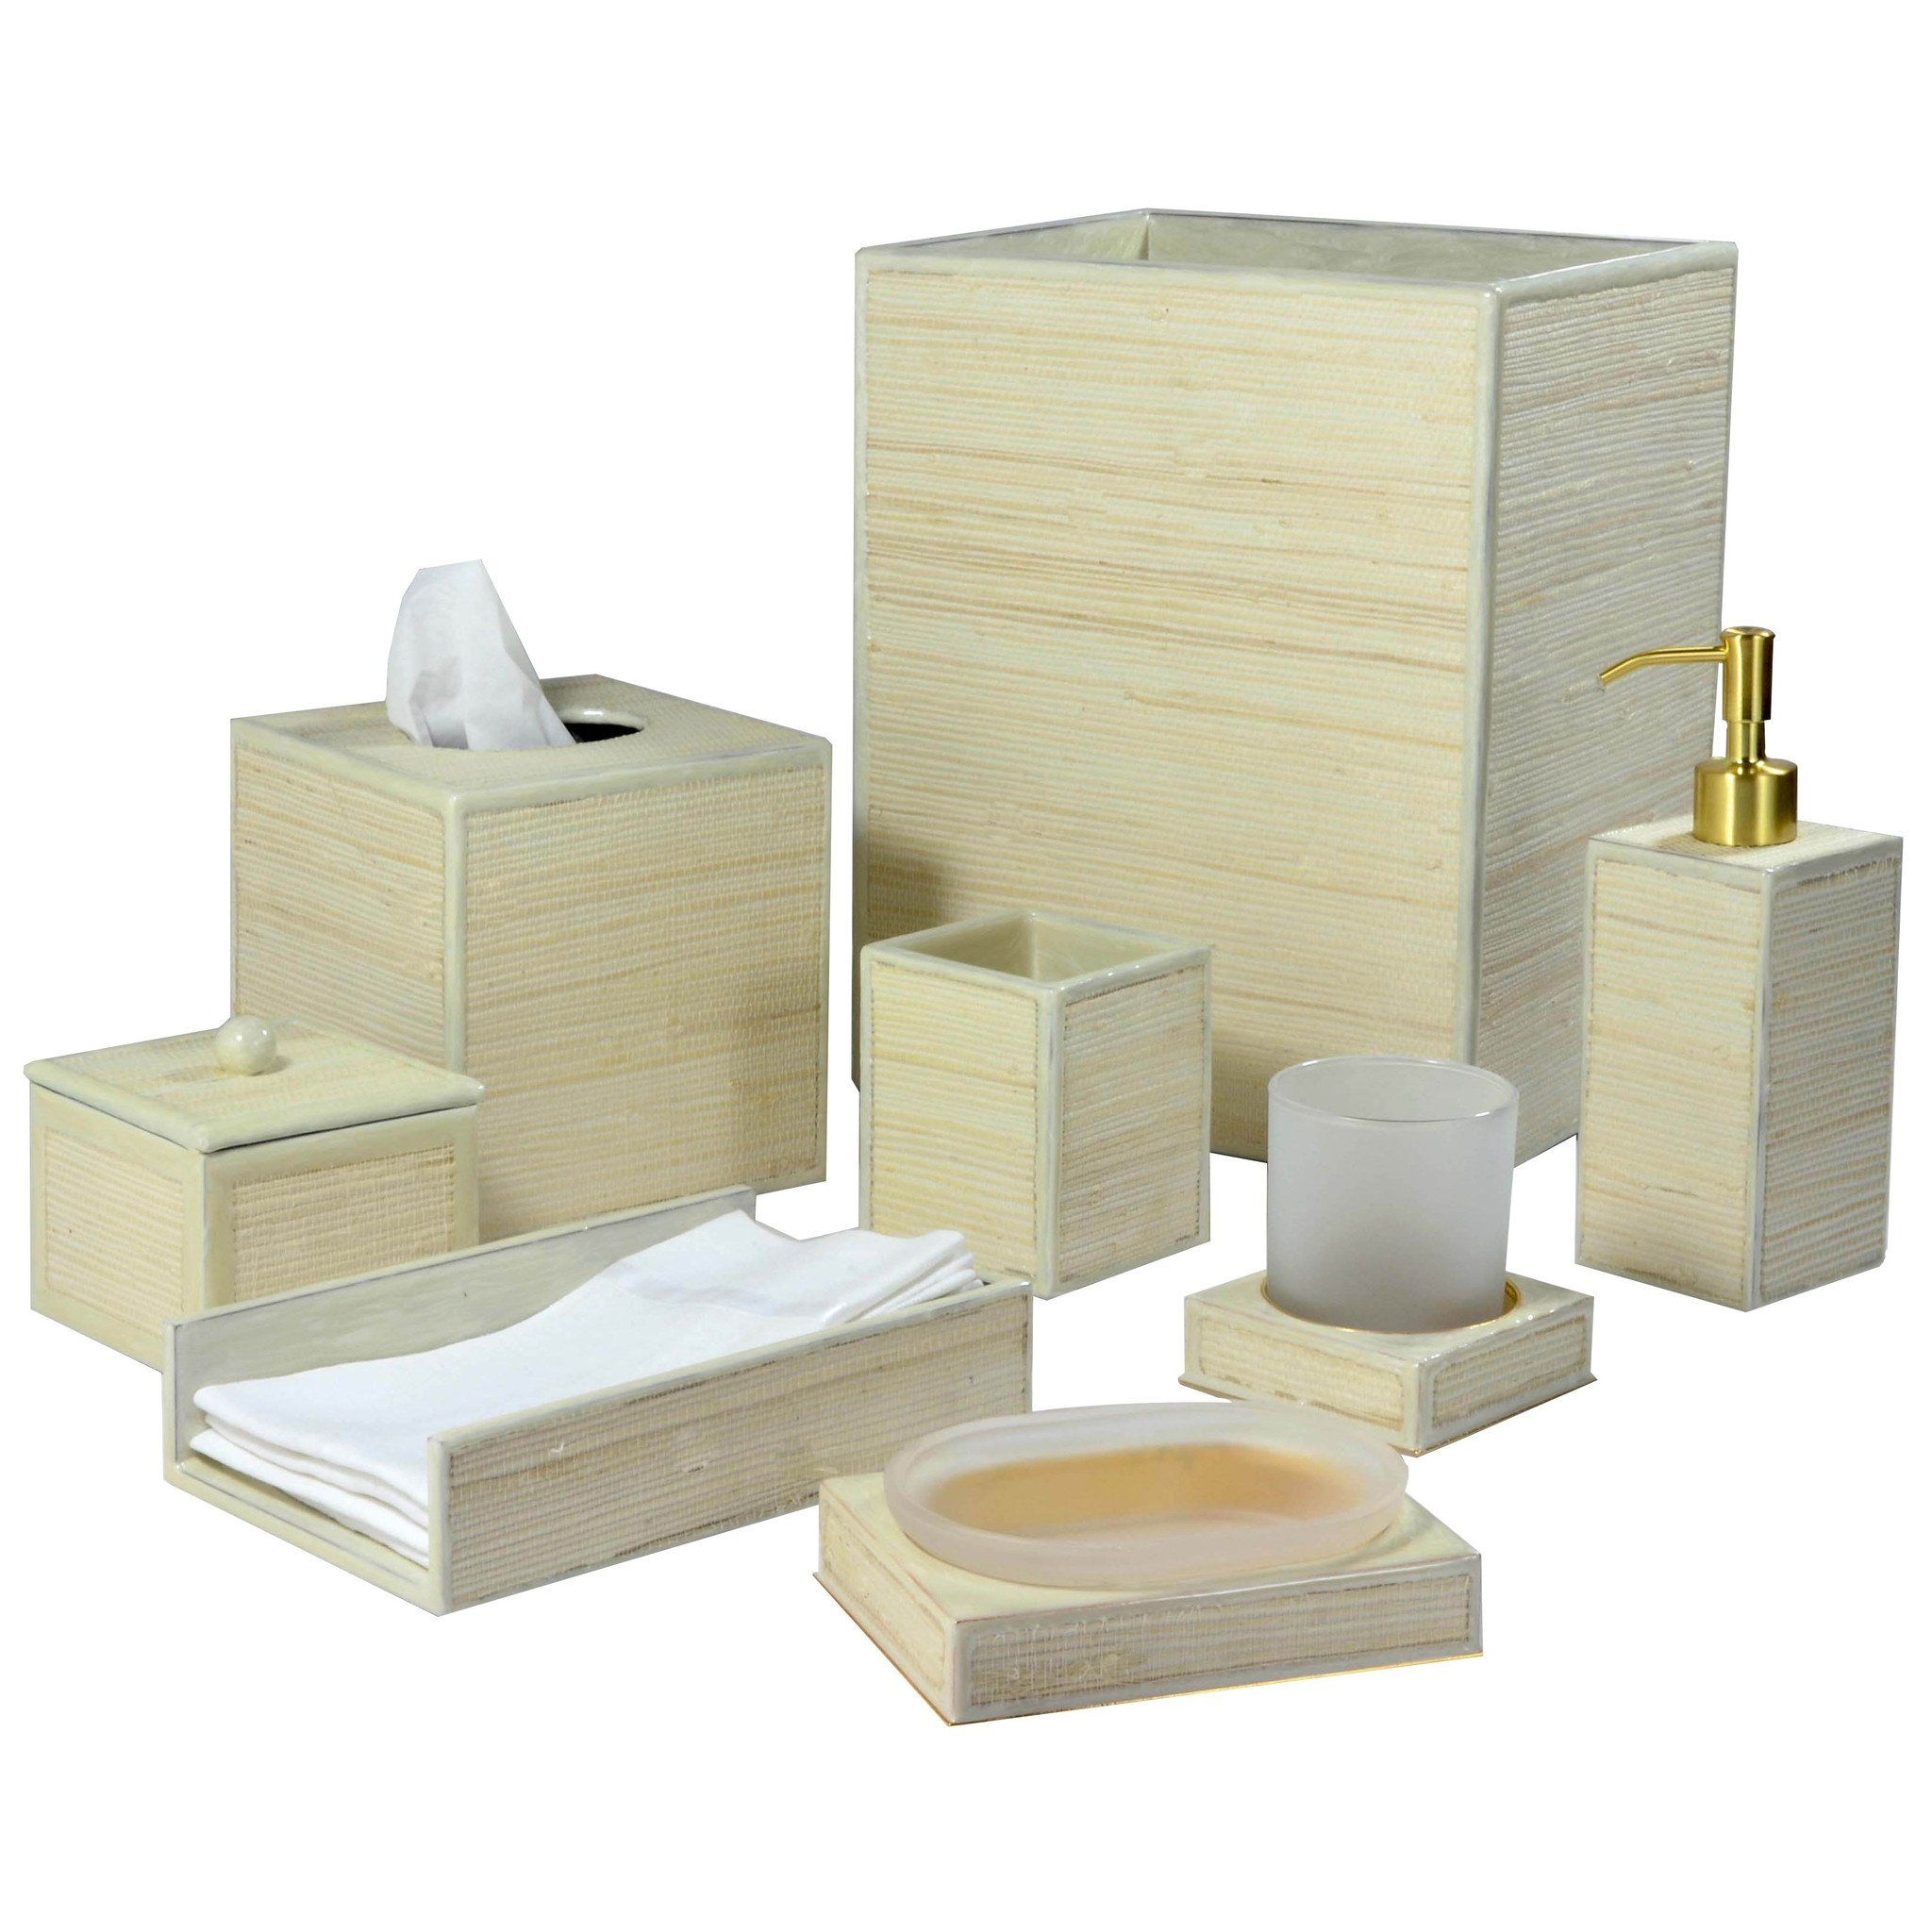 Mike and Ally Montauk Bath Accessories - Sand/Gold Enamel Trim ...